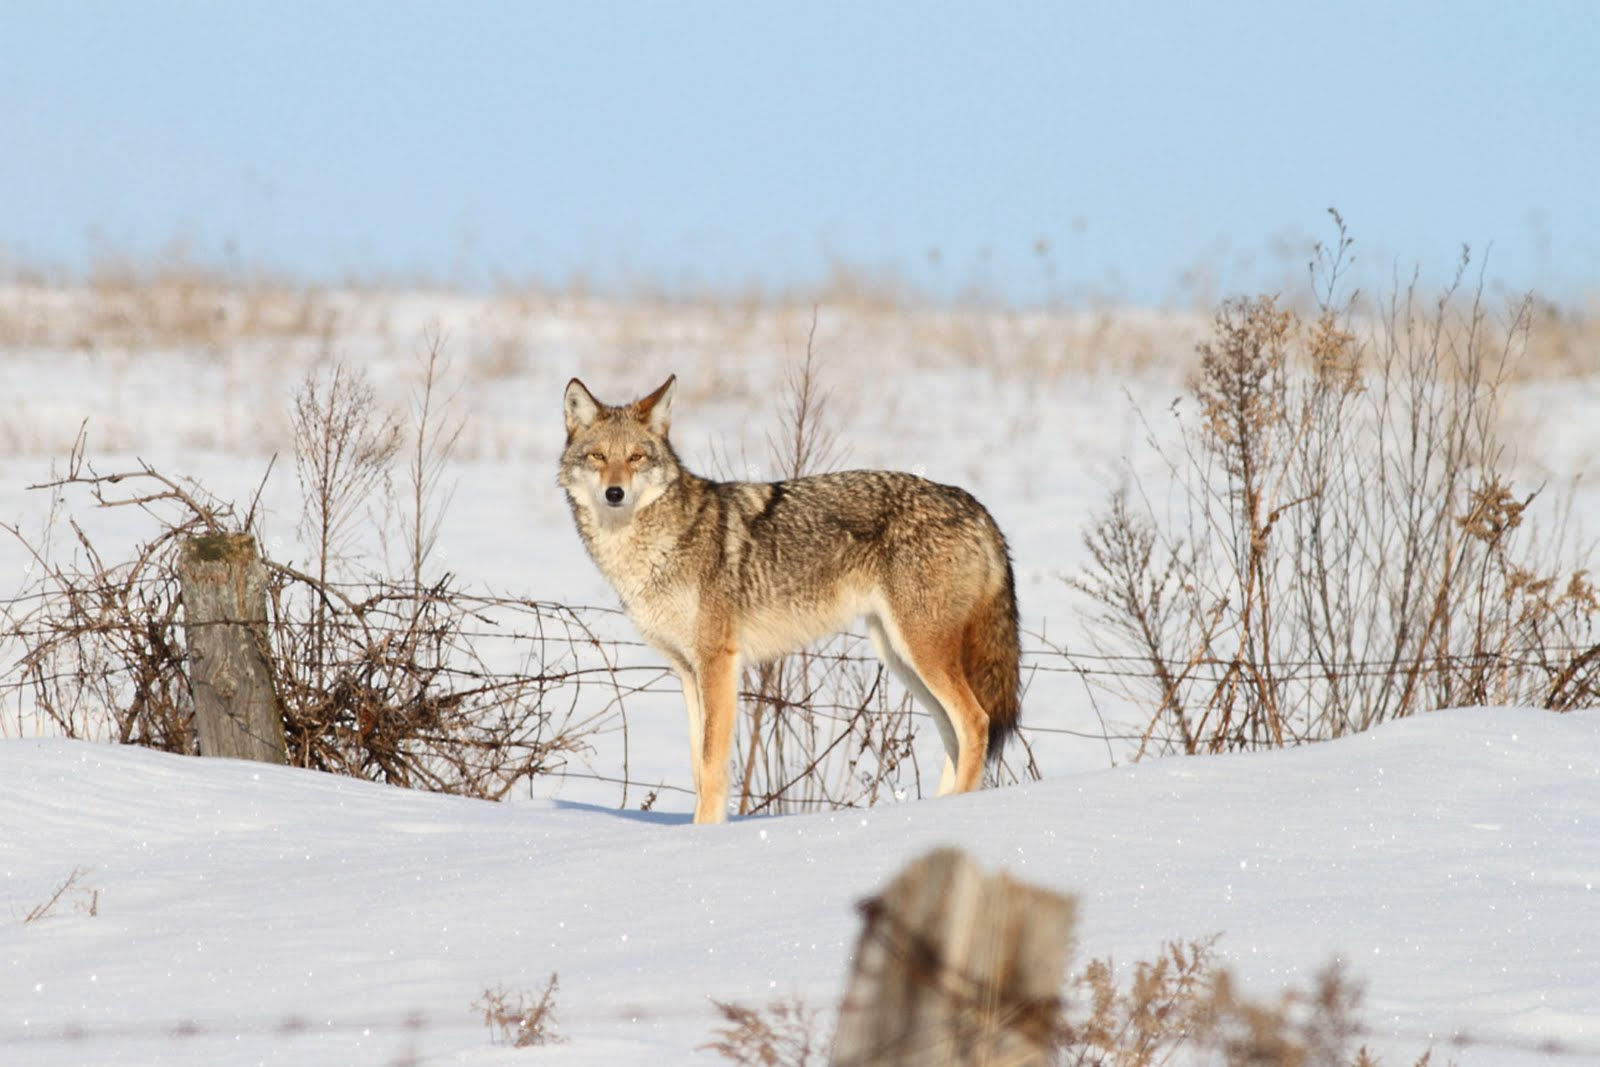 Remarkably, though not surprisingly, wildlife control agencies have ...